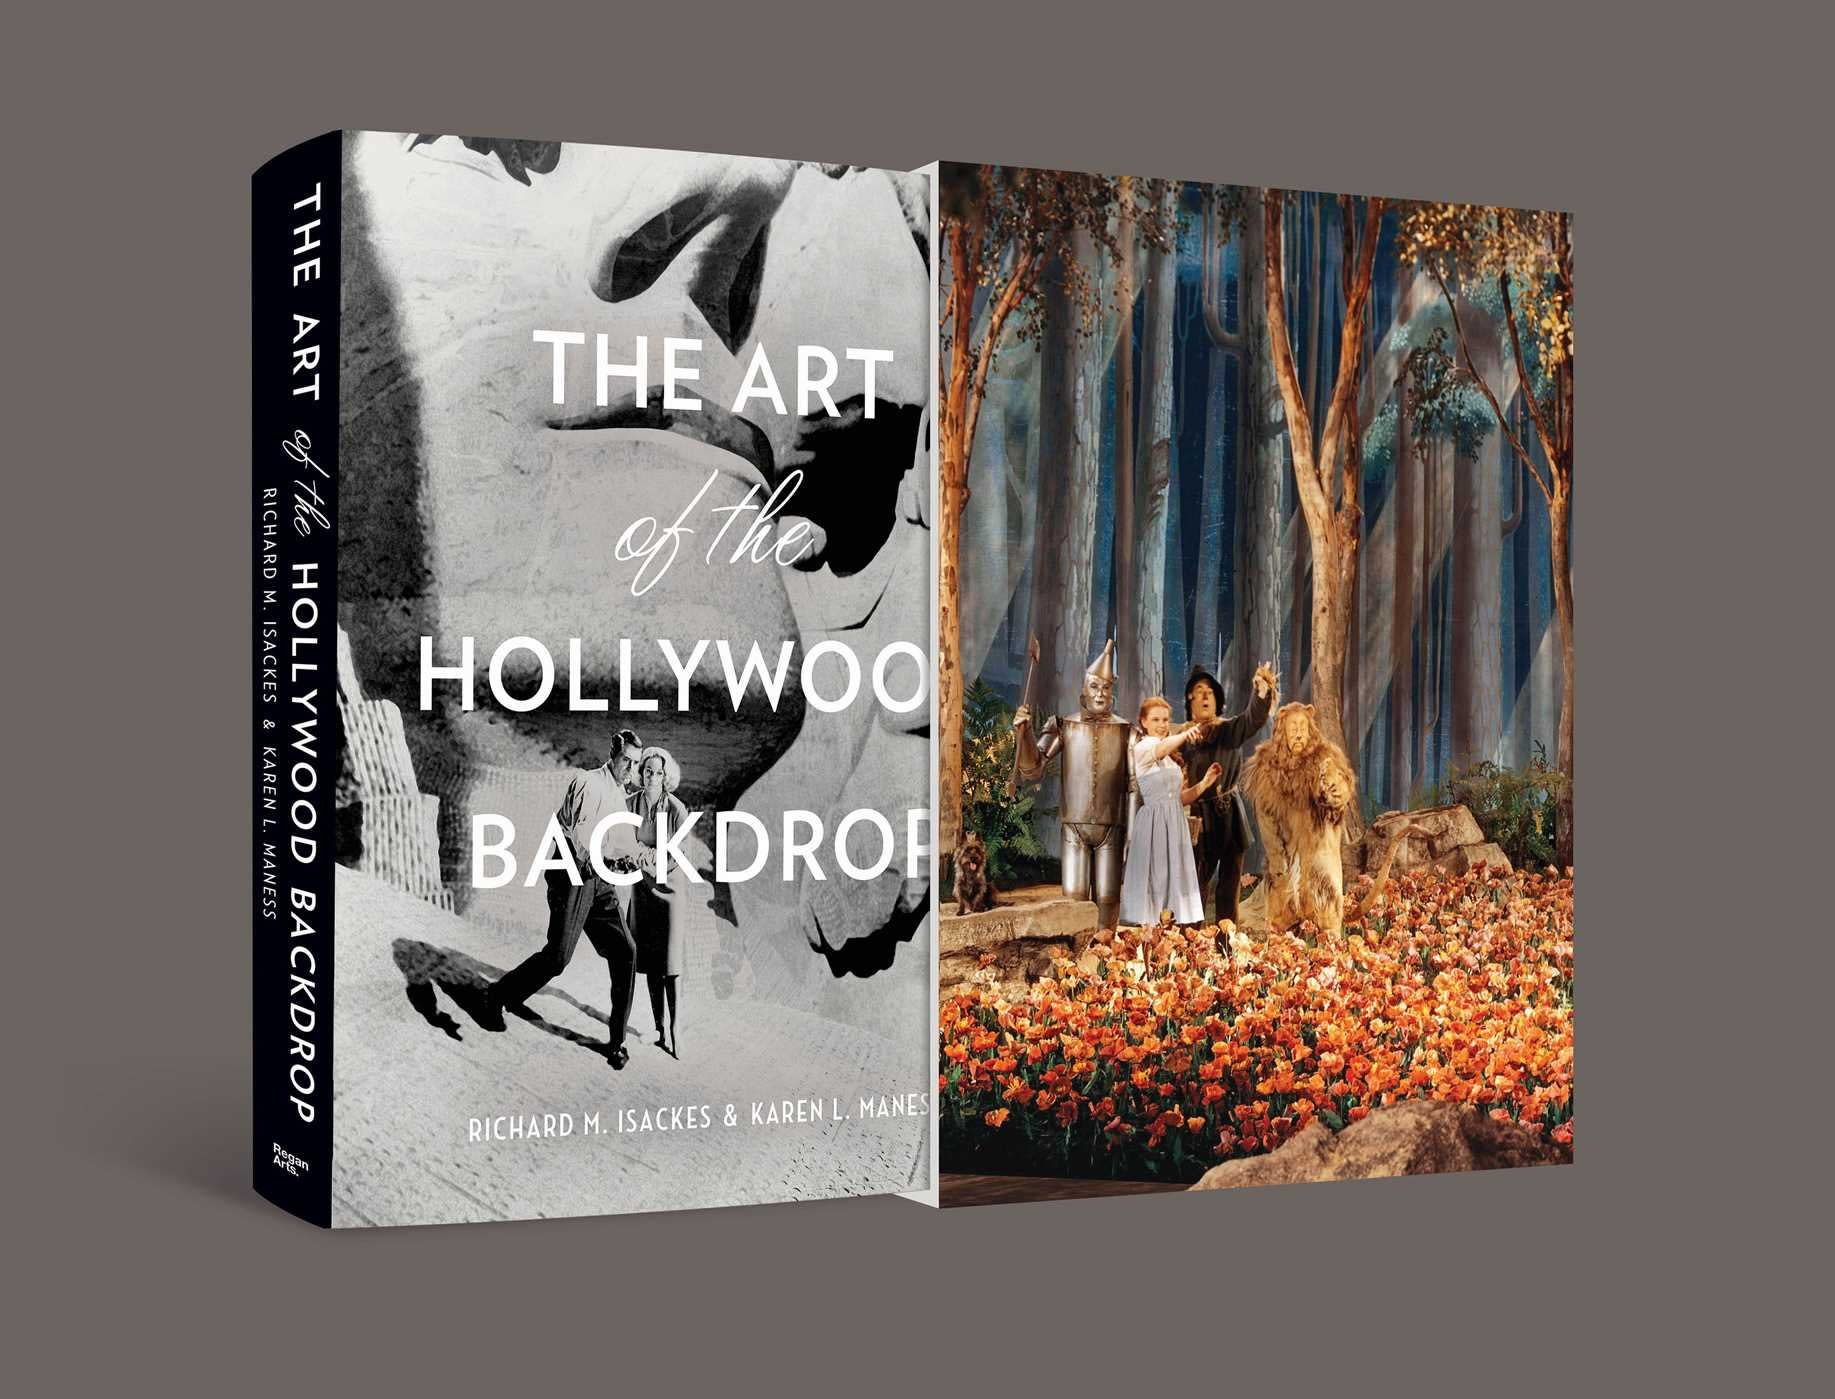 <div class='title'>           the art of the hollywood backdrop         </div>